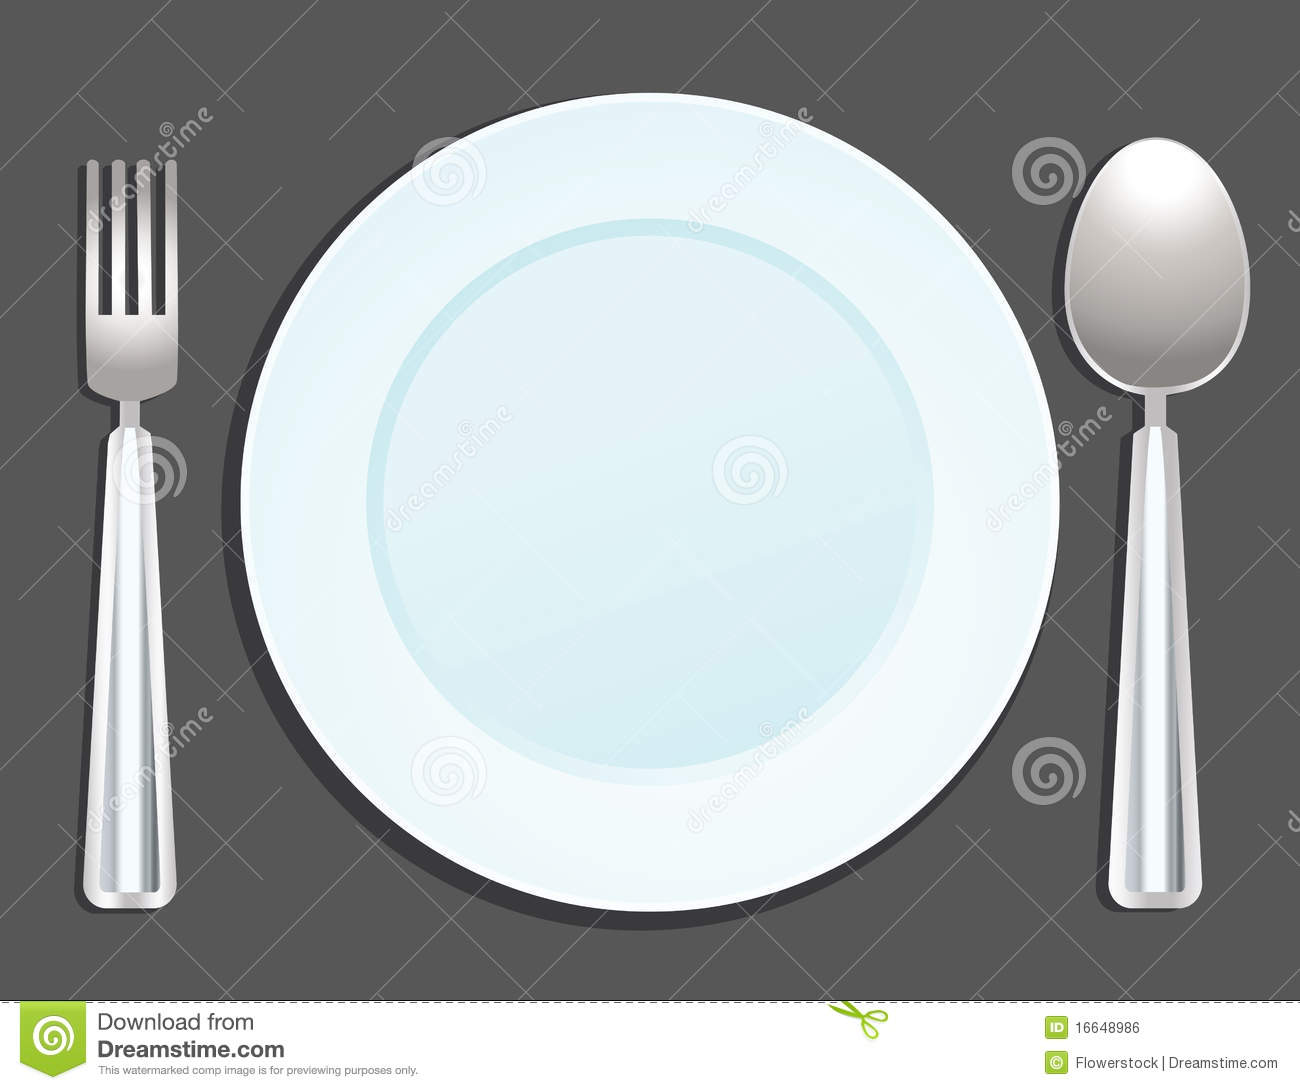 Plate, Spoon And Fork Royalty Free Stock Image - Image: 16648986